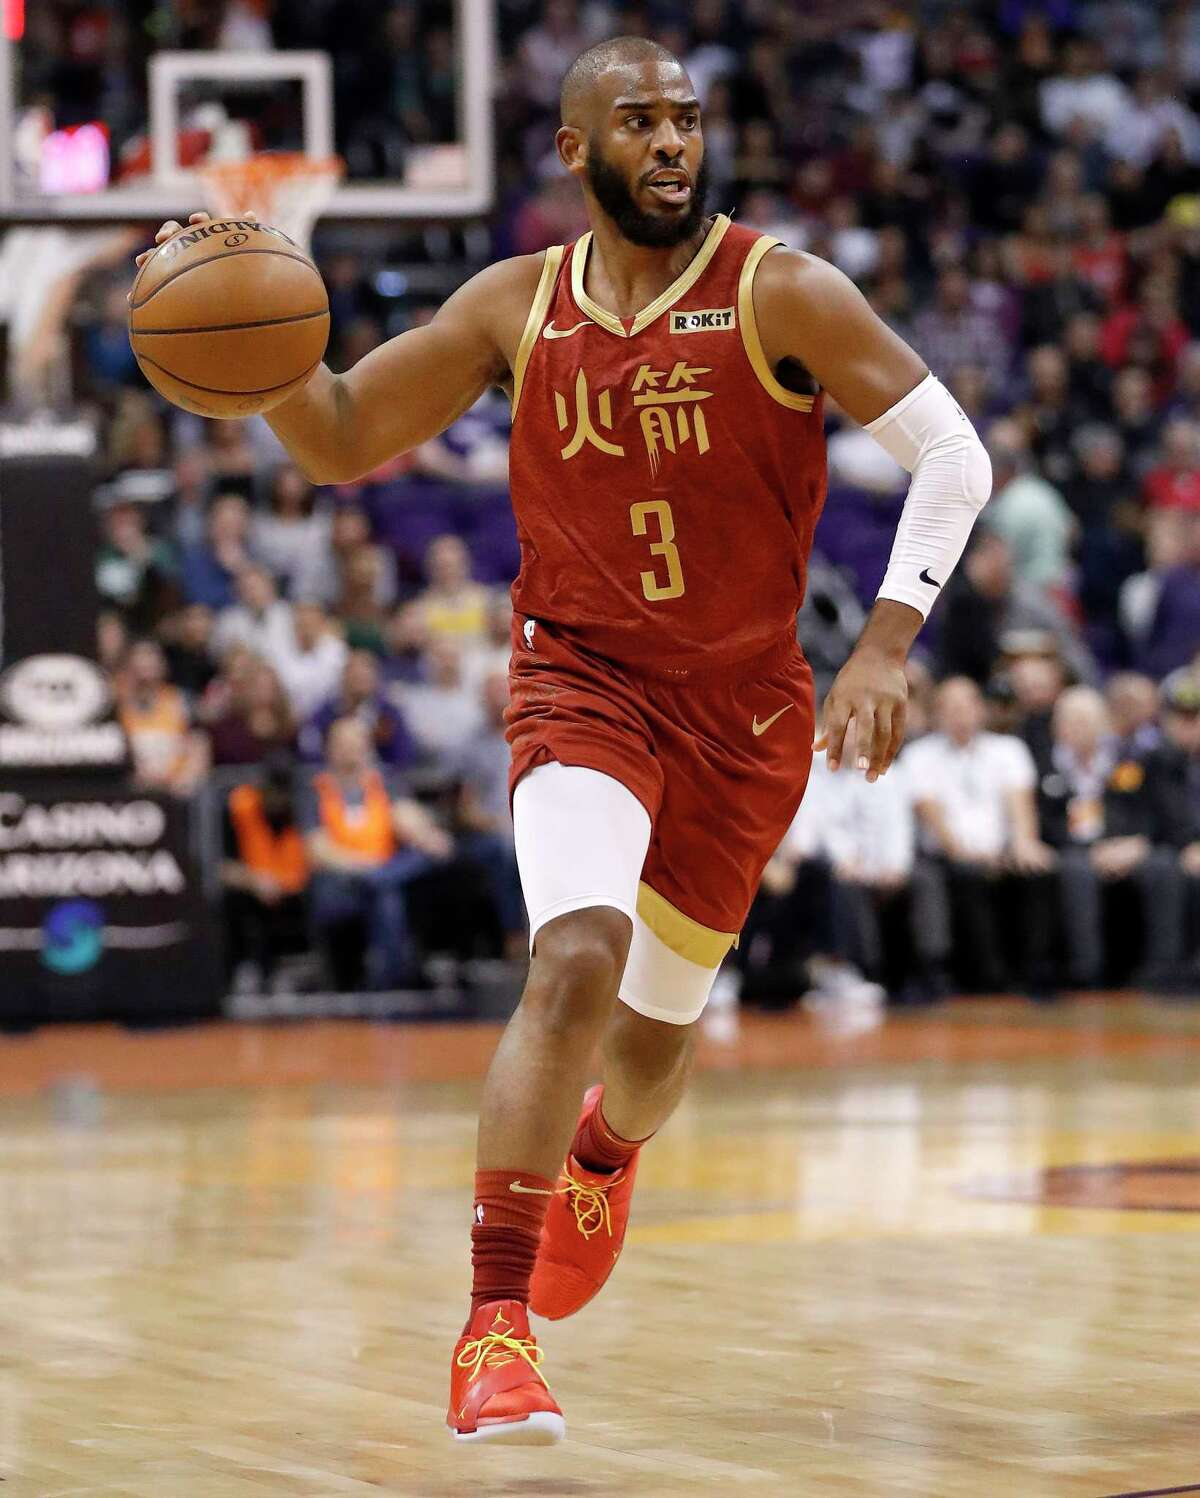 Houston Rockets guard Chris Paul (3) moves the ball up court against the Phoenix Suns during the first half of an NBA basketball game, Monday, Feb. 4, 2019, in Phoenix. (AP Photo/Matt York)